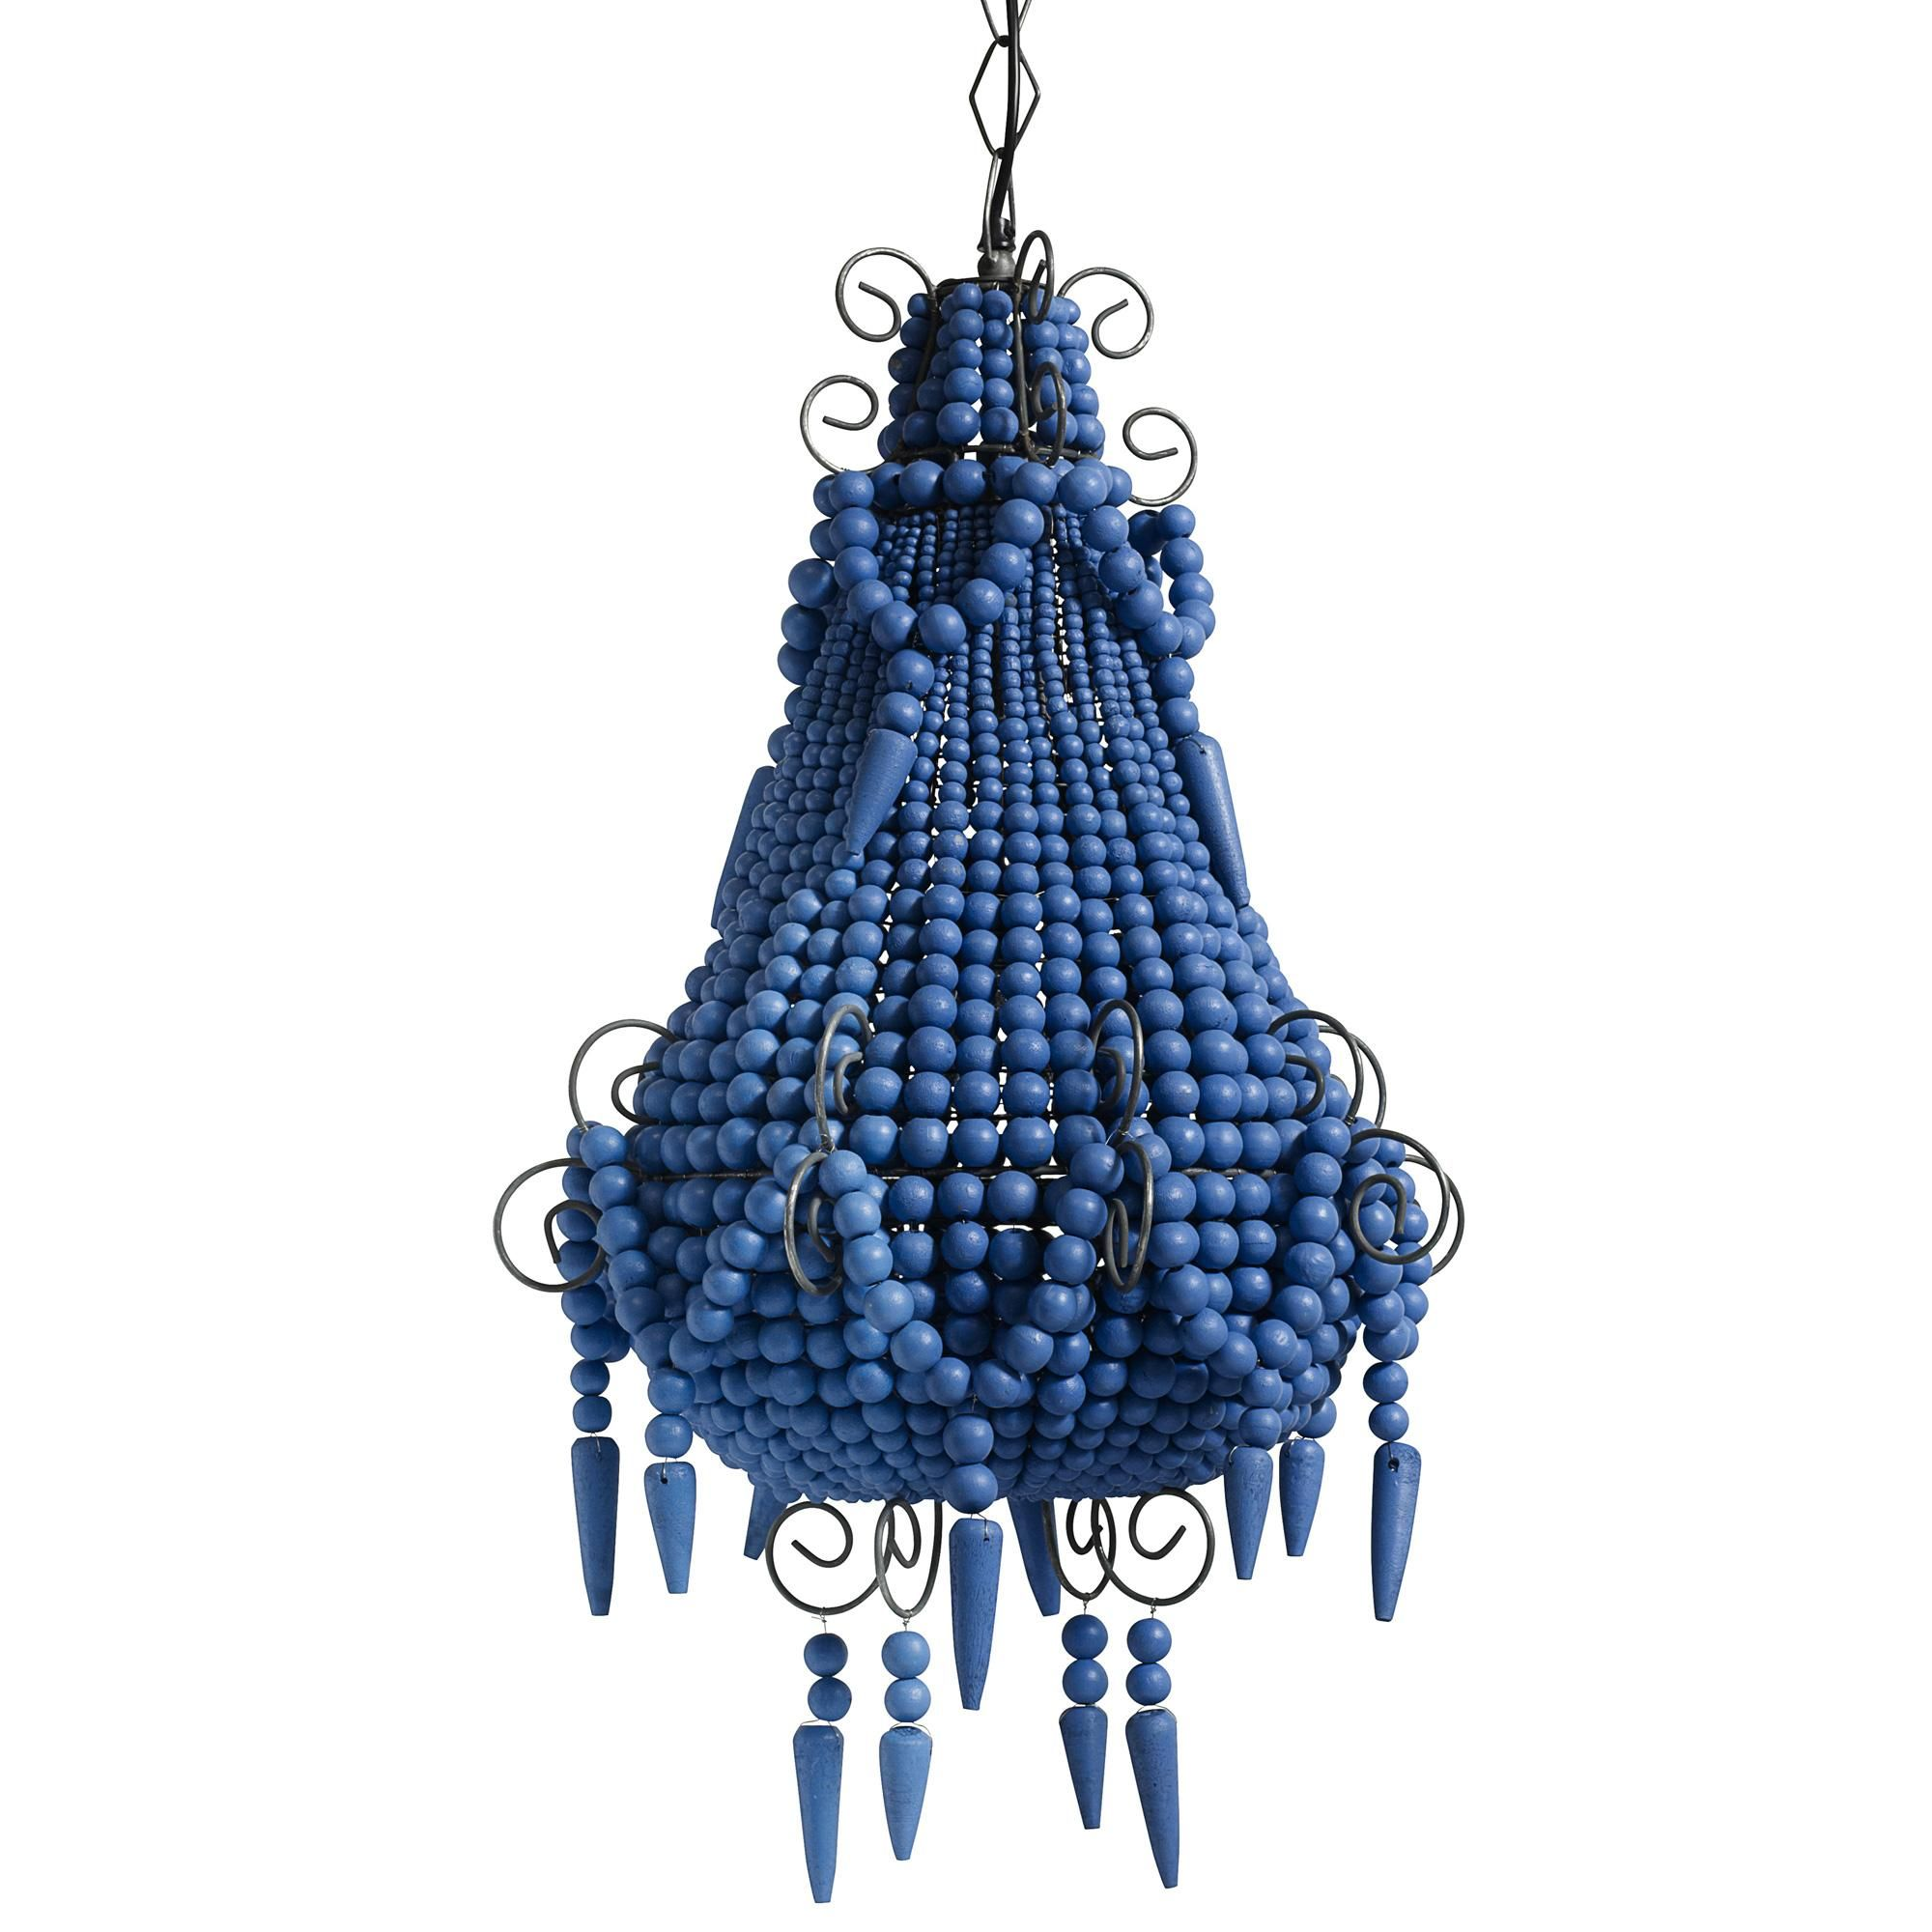 Beaded Chandelier in Royal Blue